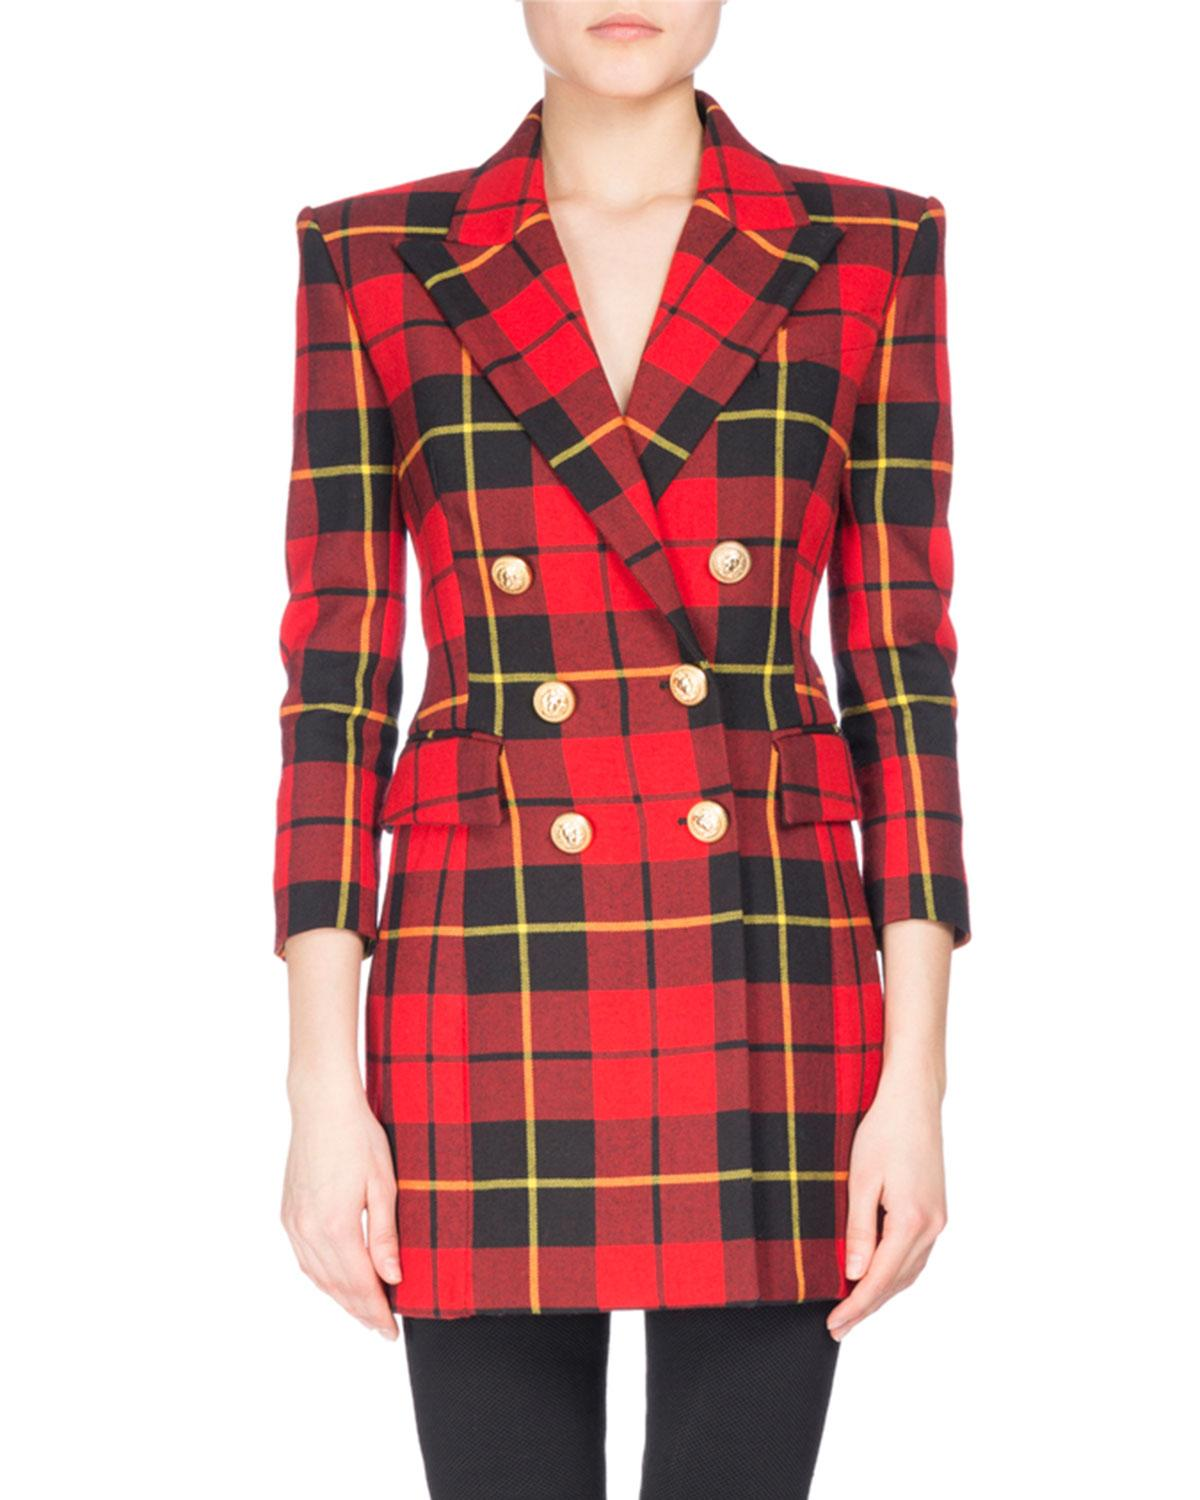 ae4ed853 Balmain - Tartan Double-breasted Minidress Red/black - Lyst. View fullscreen